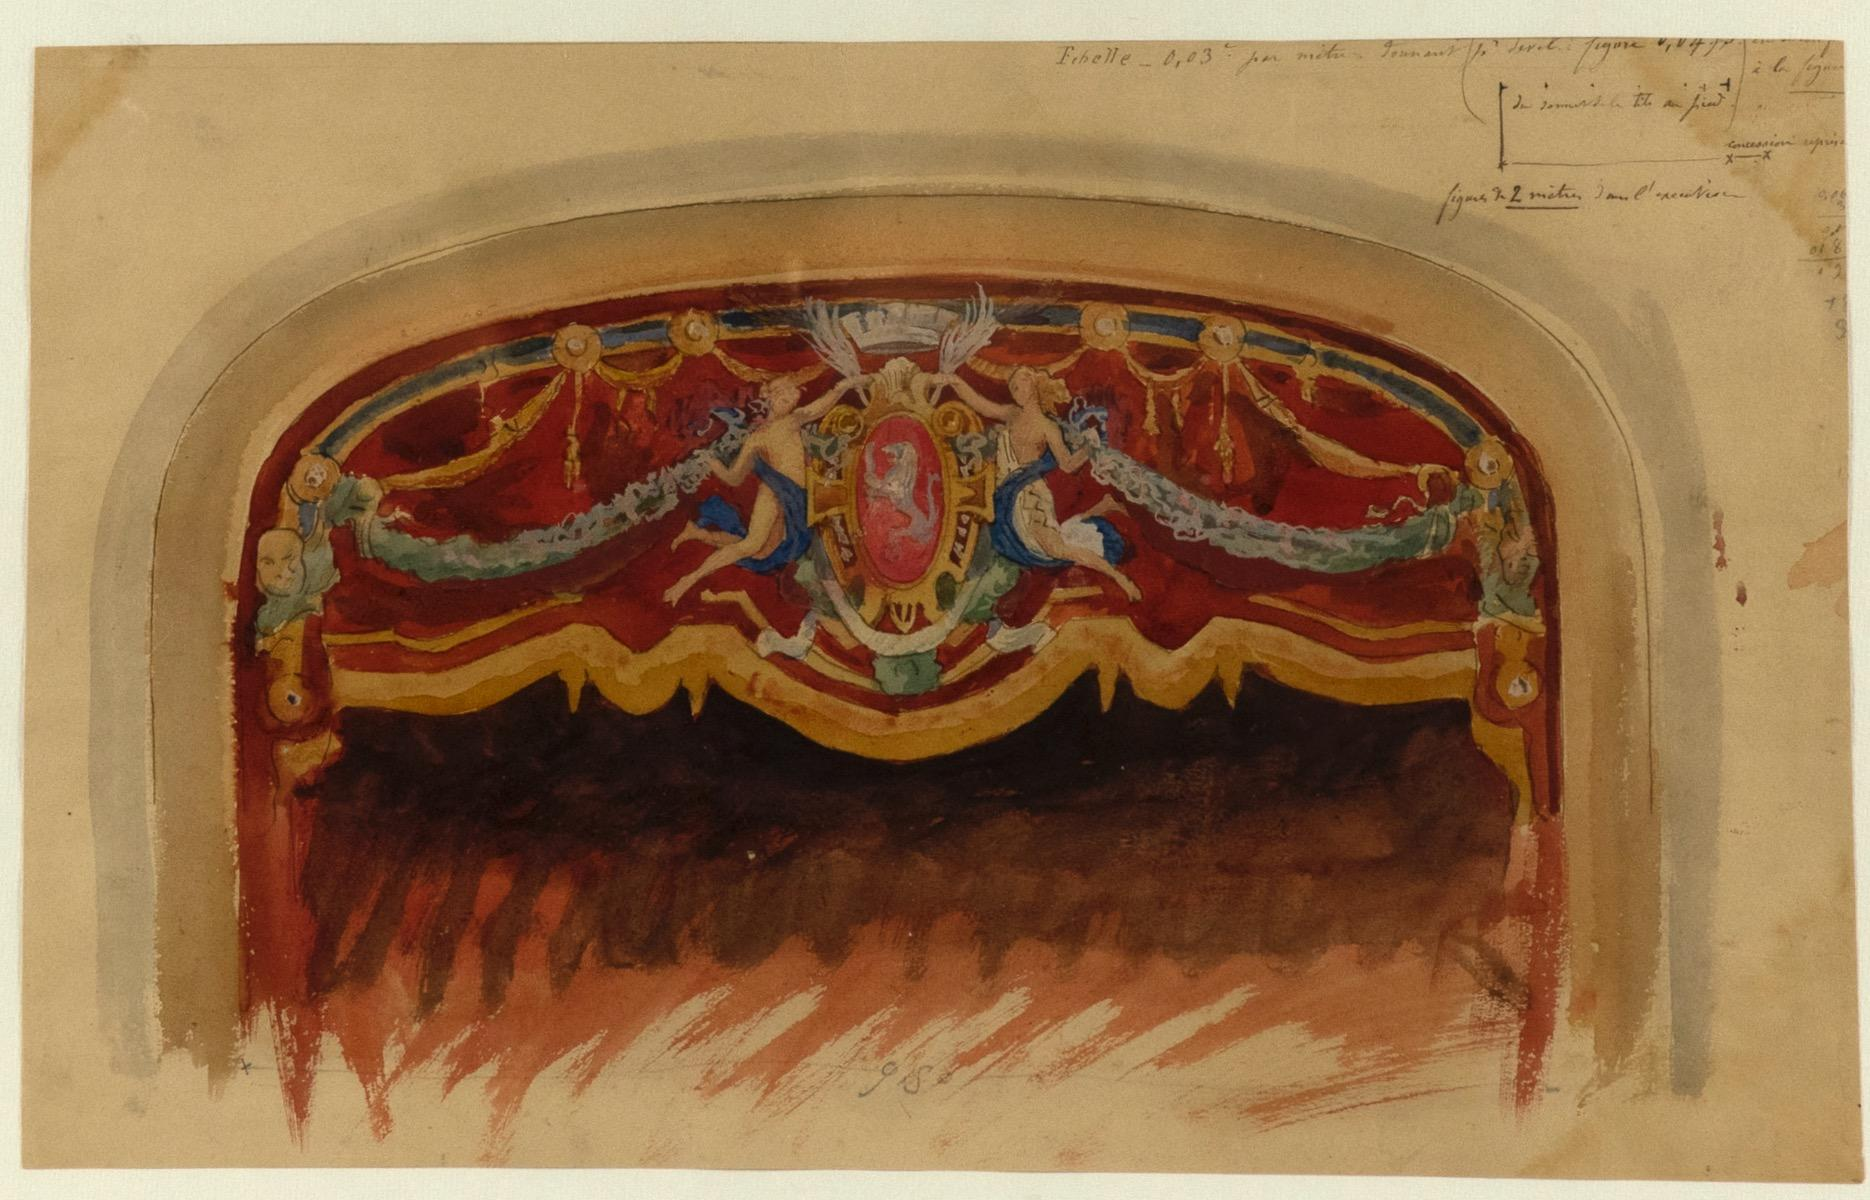 Scenography - Original Watercolor Drawing by Auguste Leroux - Early 20th Century